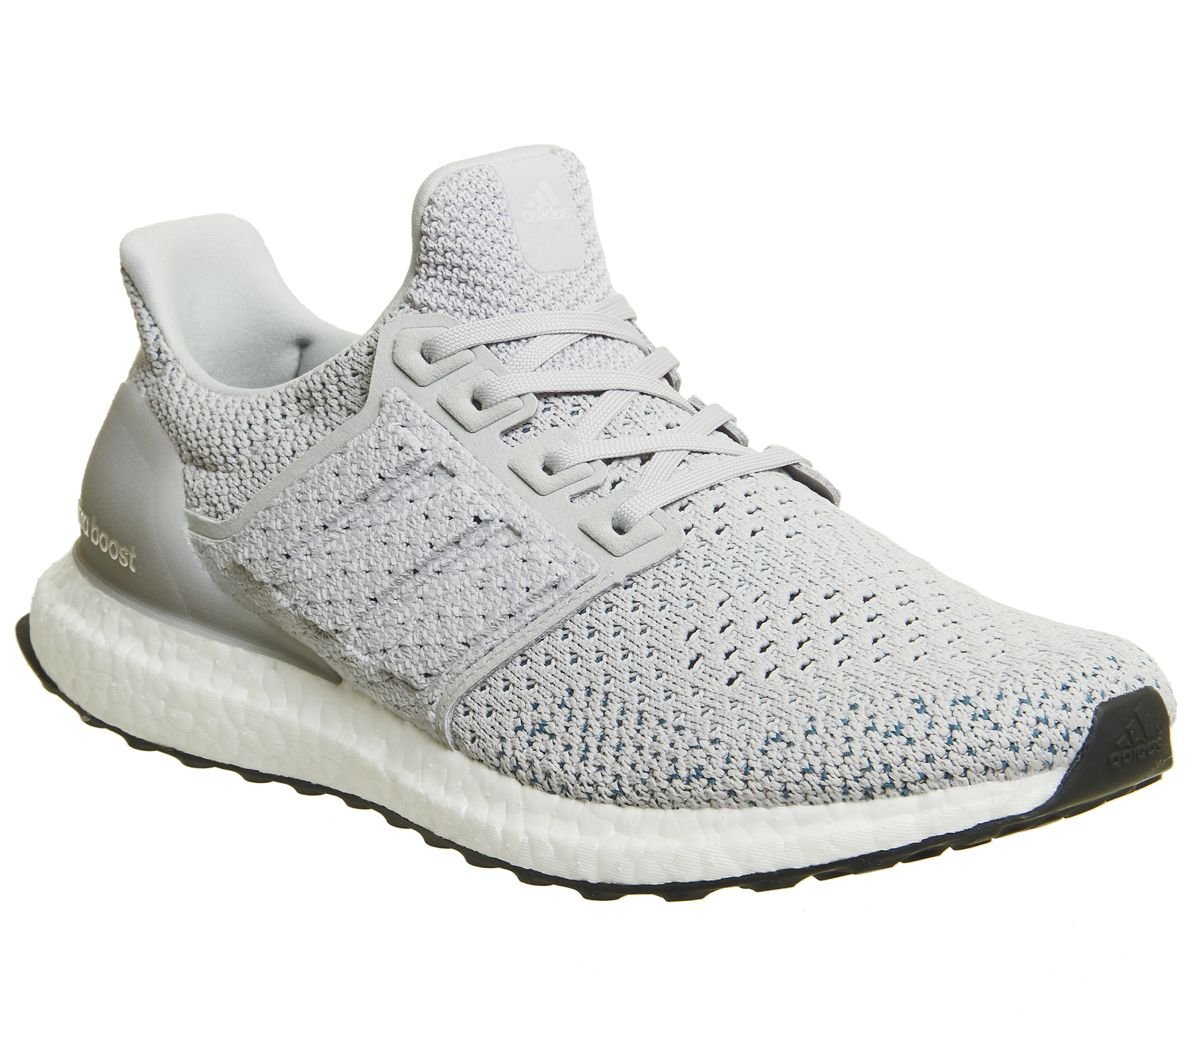 8431b13b6 adidas Ultraboost Ultra Boost Trainers Dark Grey White Clima - His ...